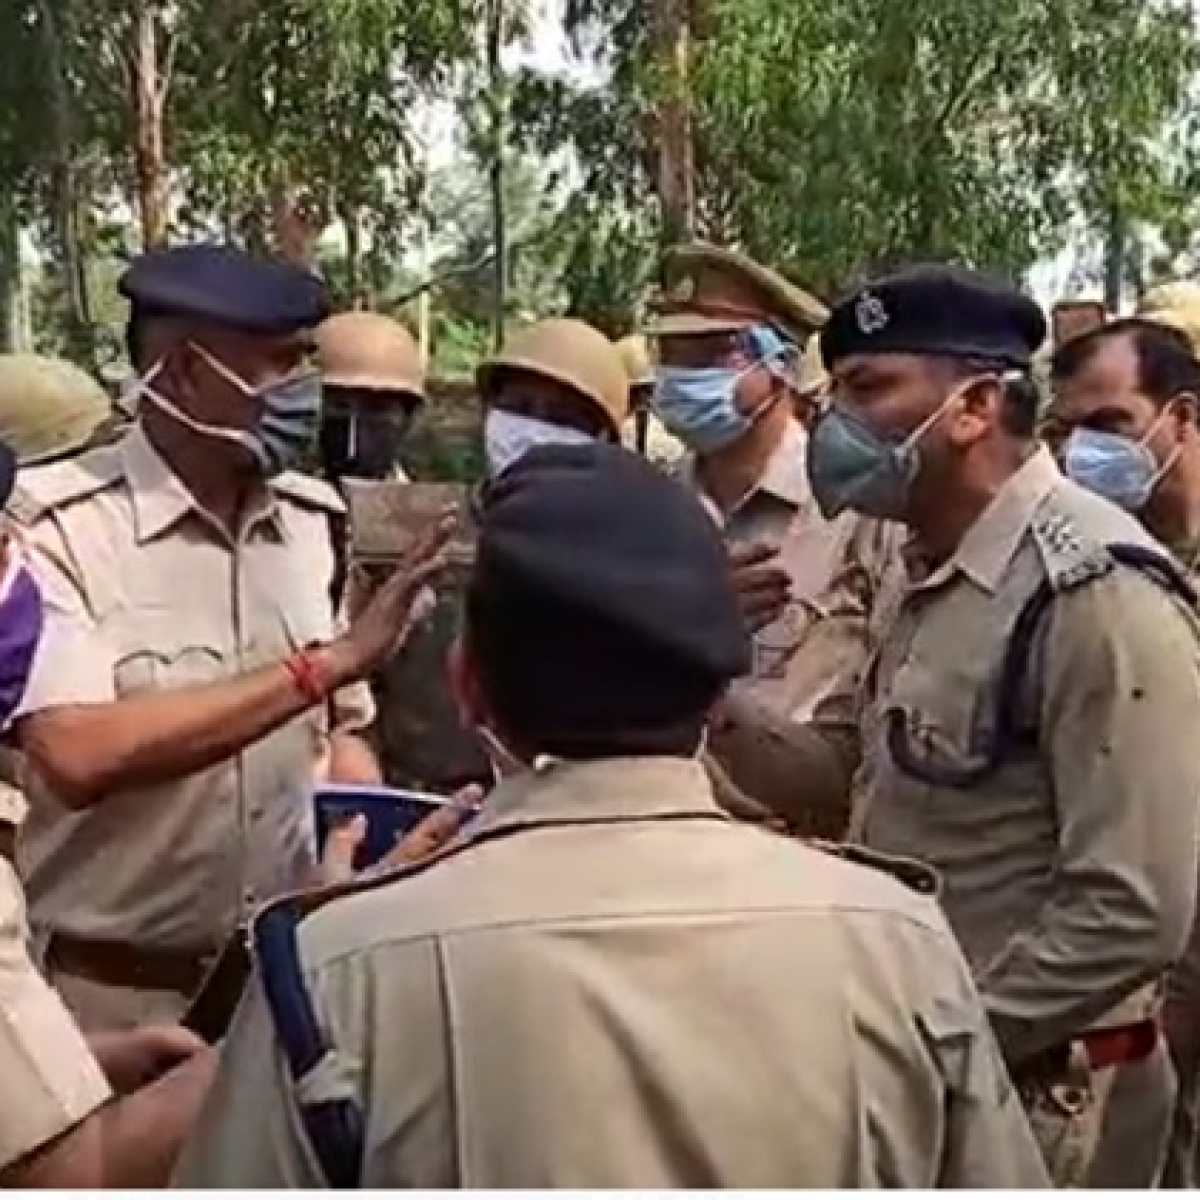 COVID-19 lockdown: Cops jostle at UP-Rajasthan border over movement of migrant workers